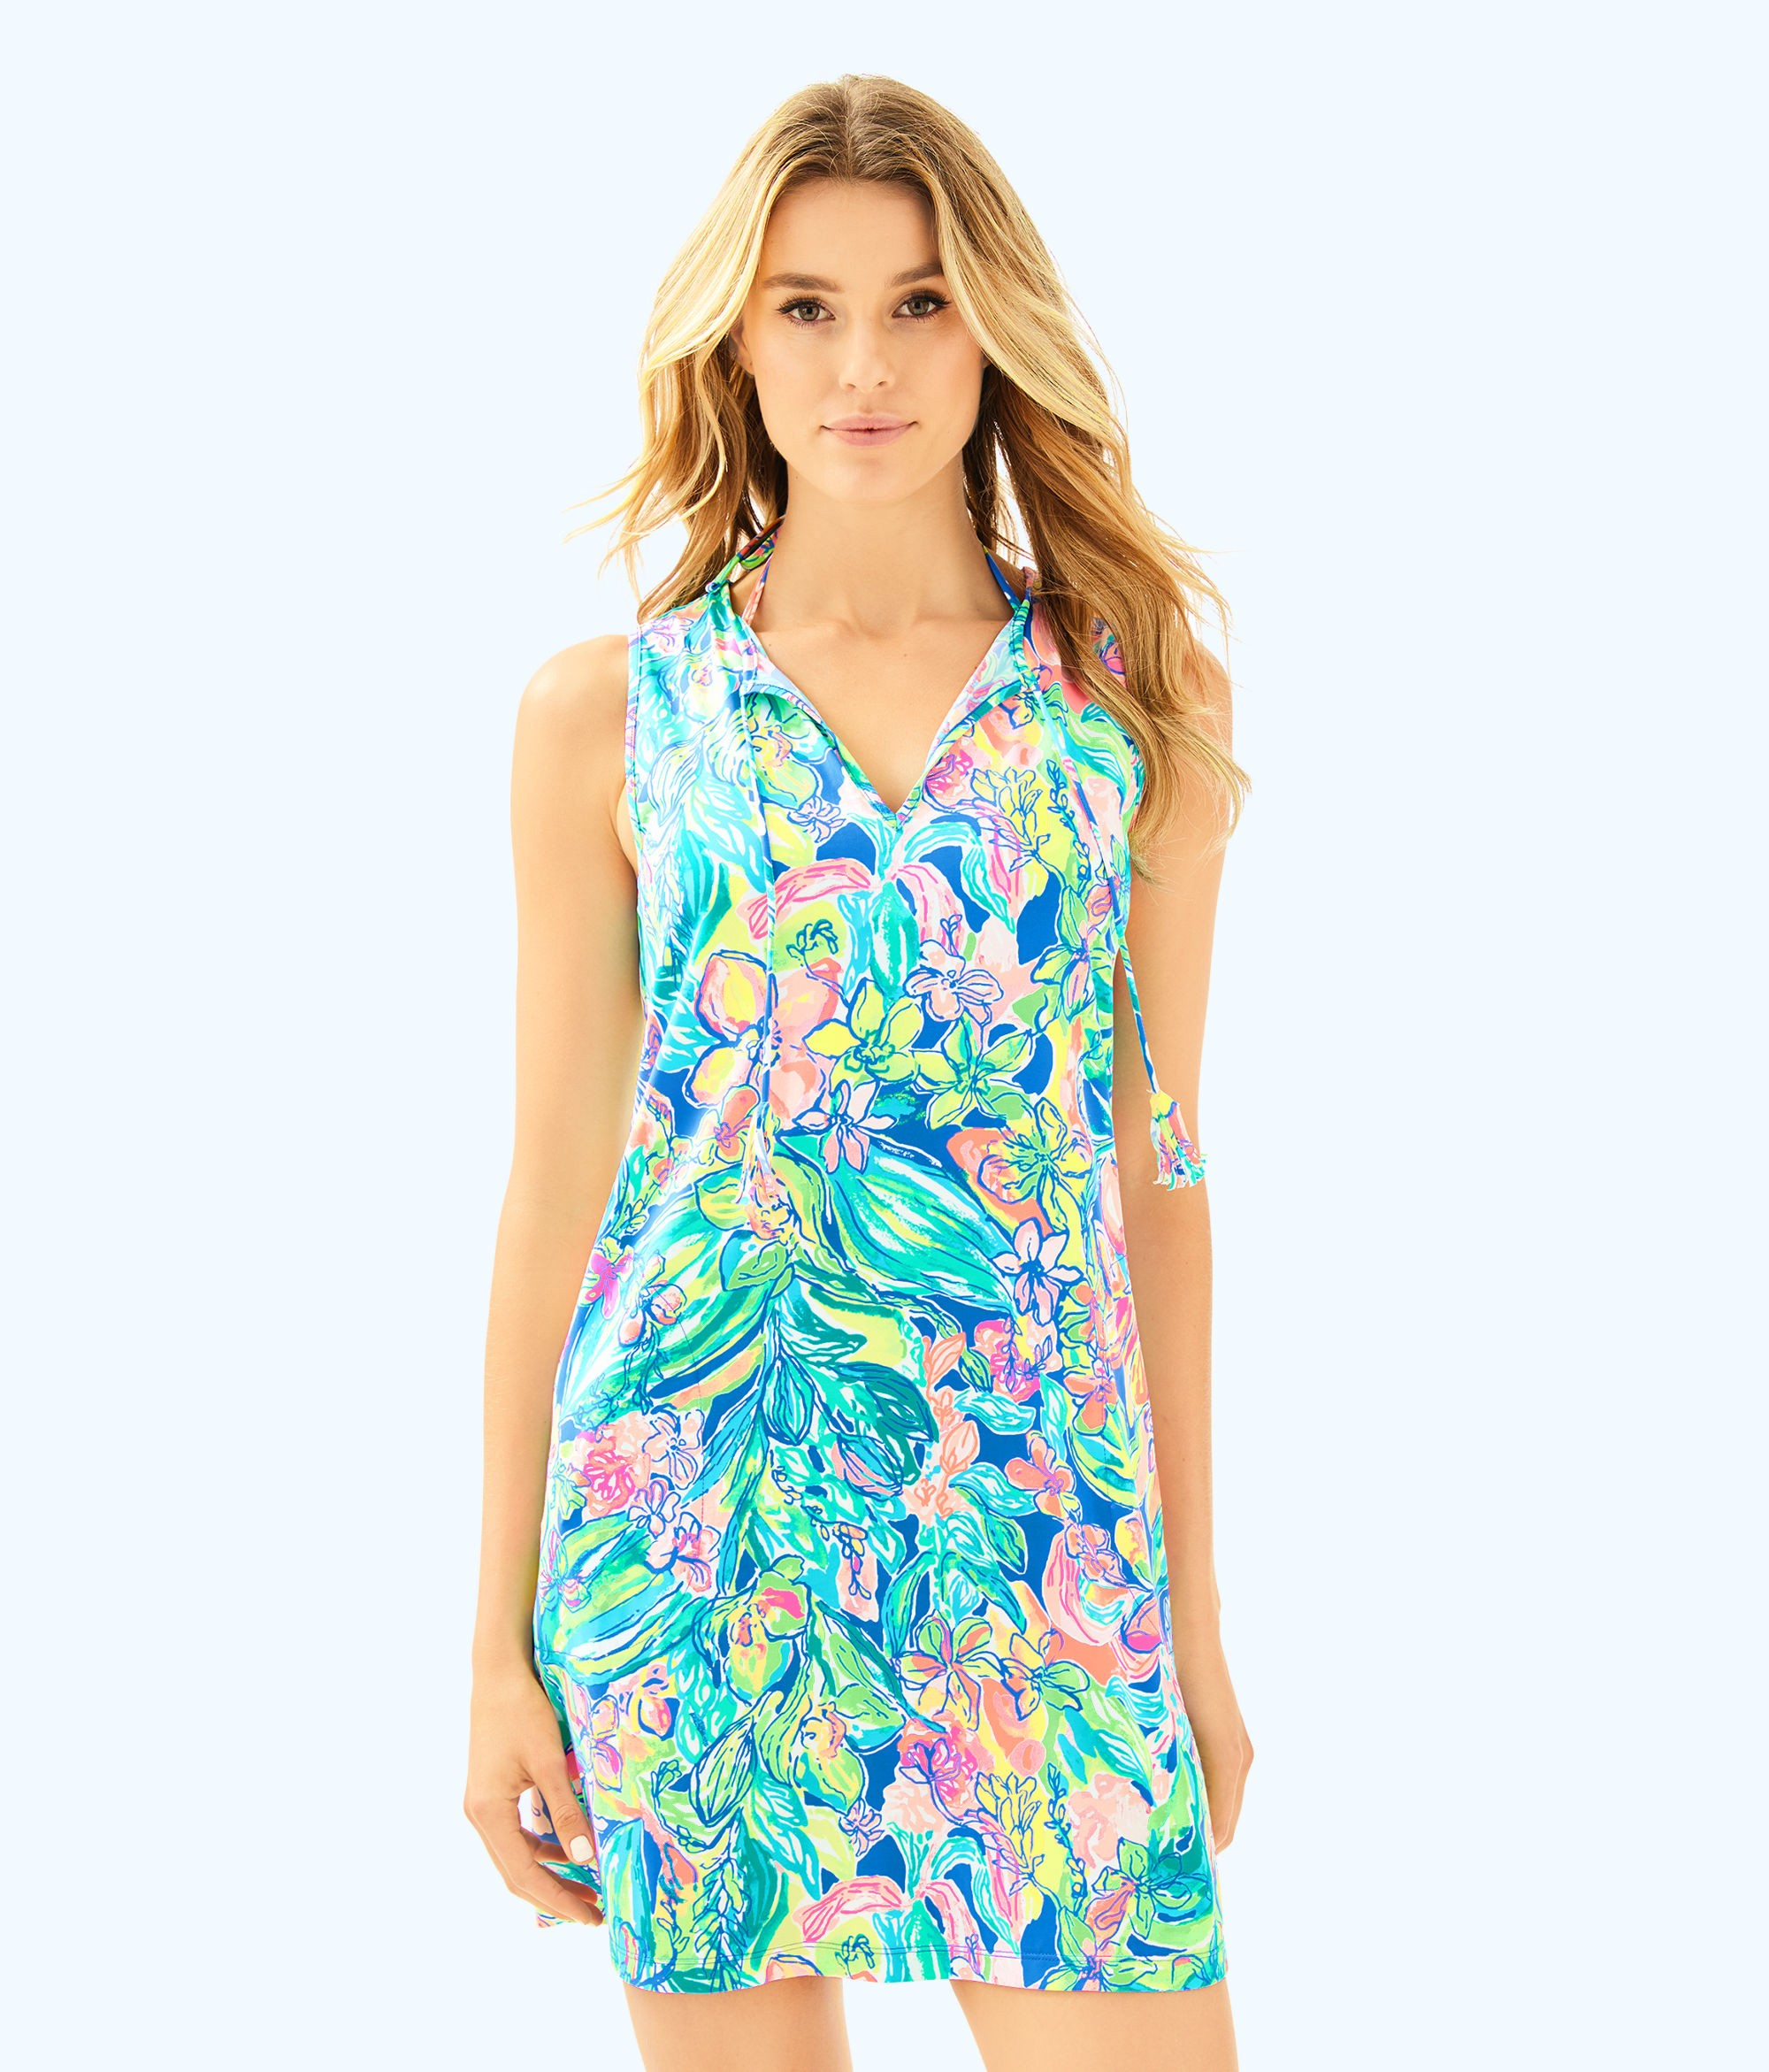 a2e88520c8 Lilly Pulitzer Johana Cover Up - XXS | Products | Cover up, Swim ...